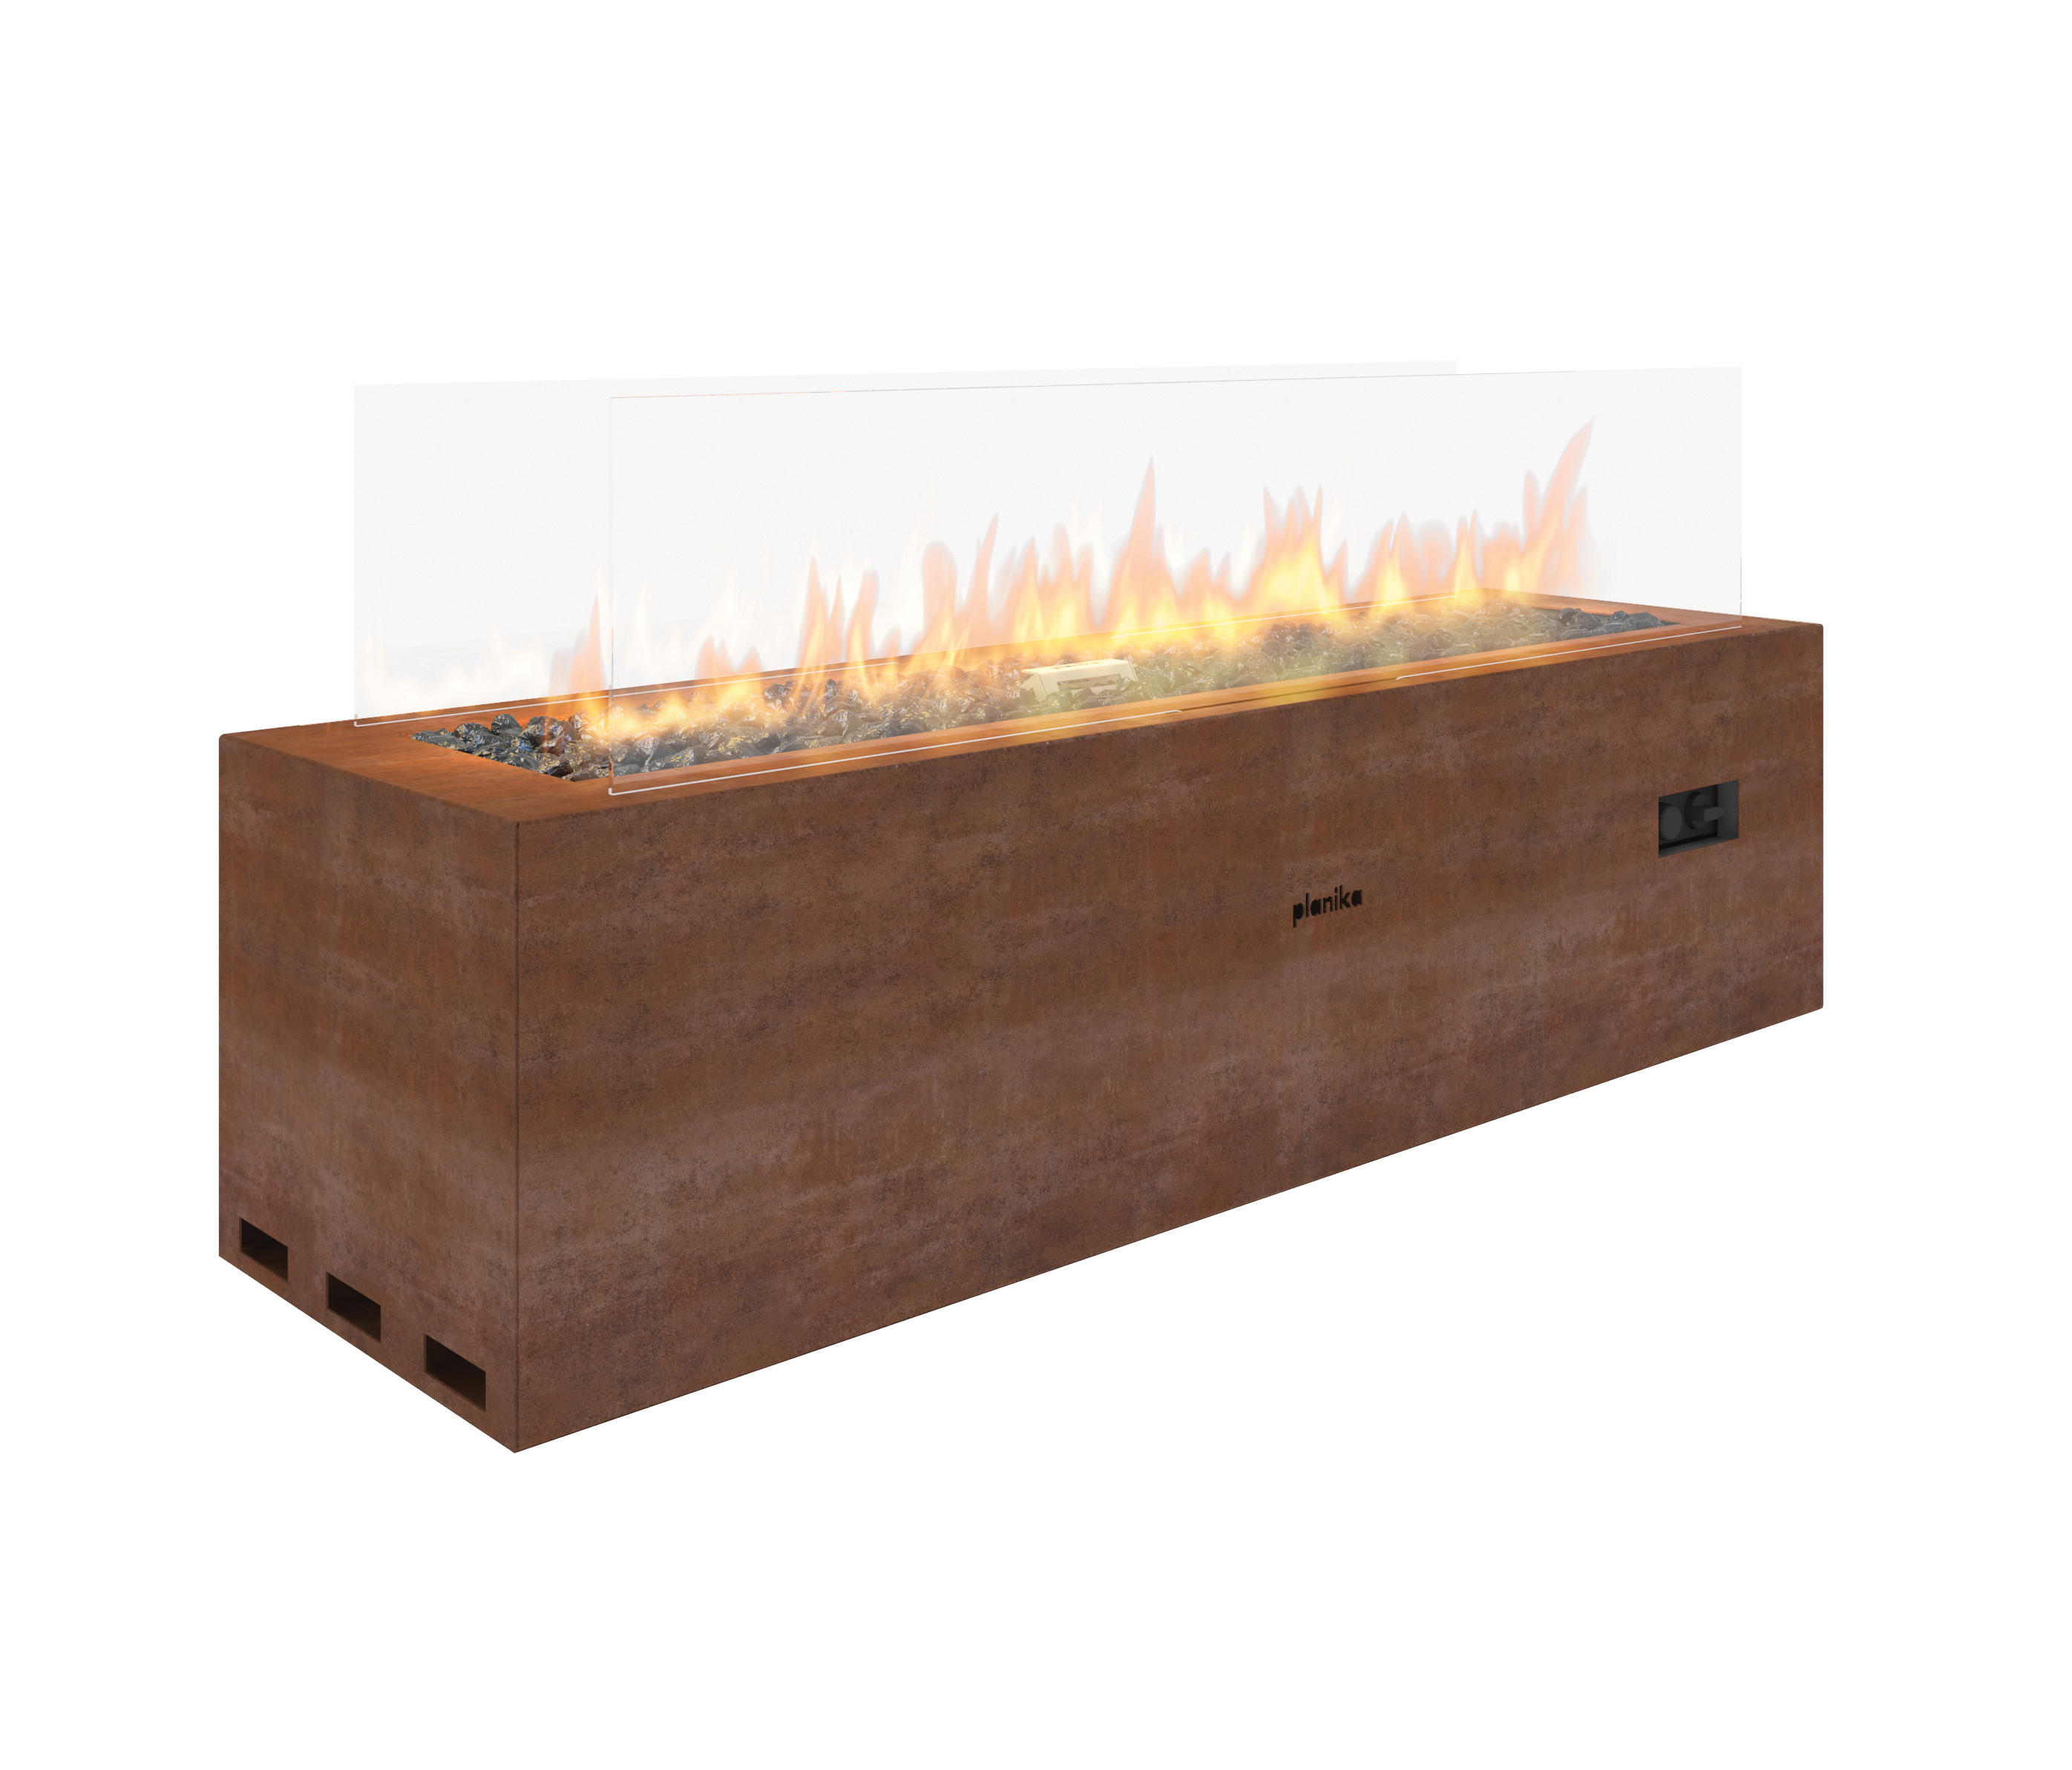 Galio Corten Ventless Fires From Planika Architonic